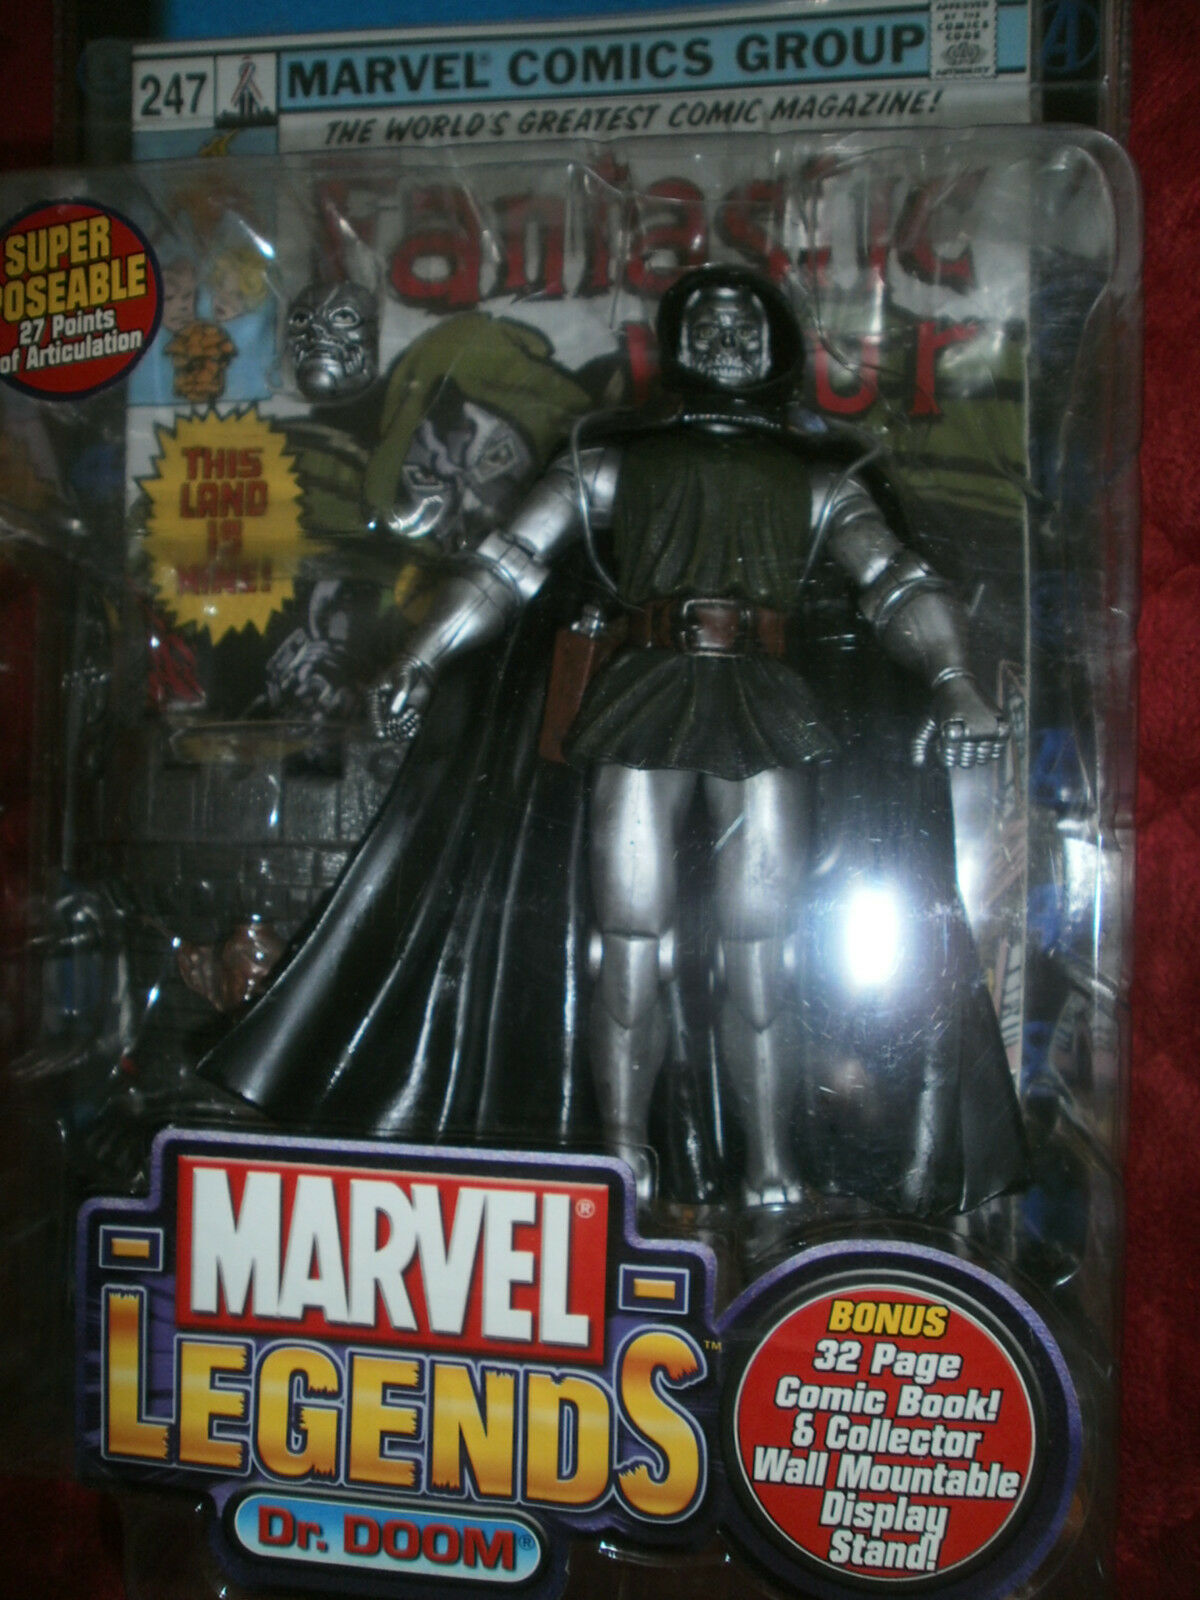 MARVEL LEGENDS  SERIES 2 DR DOOM ACTION FIGURE WITH 32 PAGE COMIC